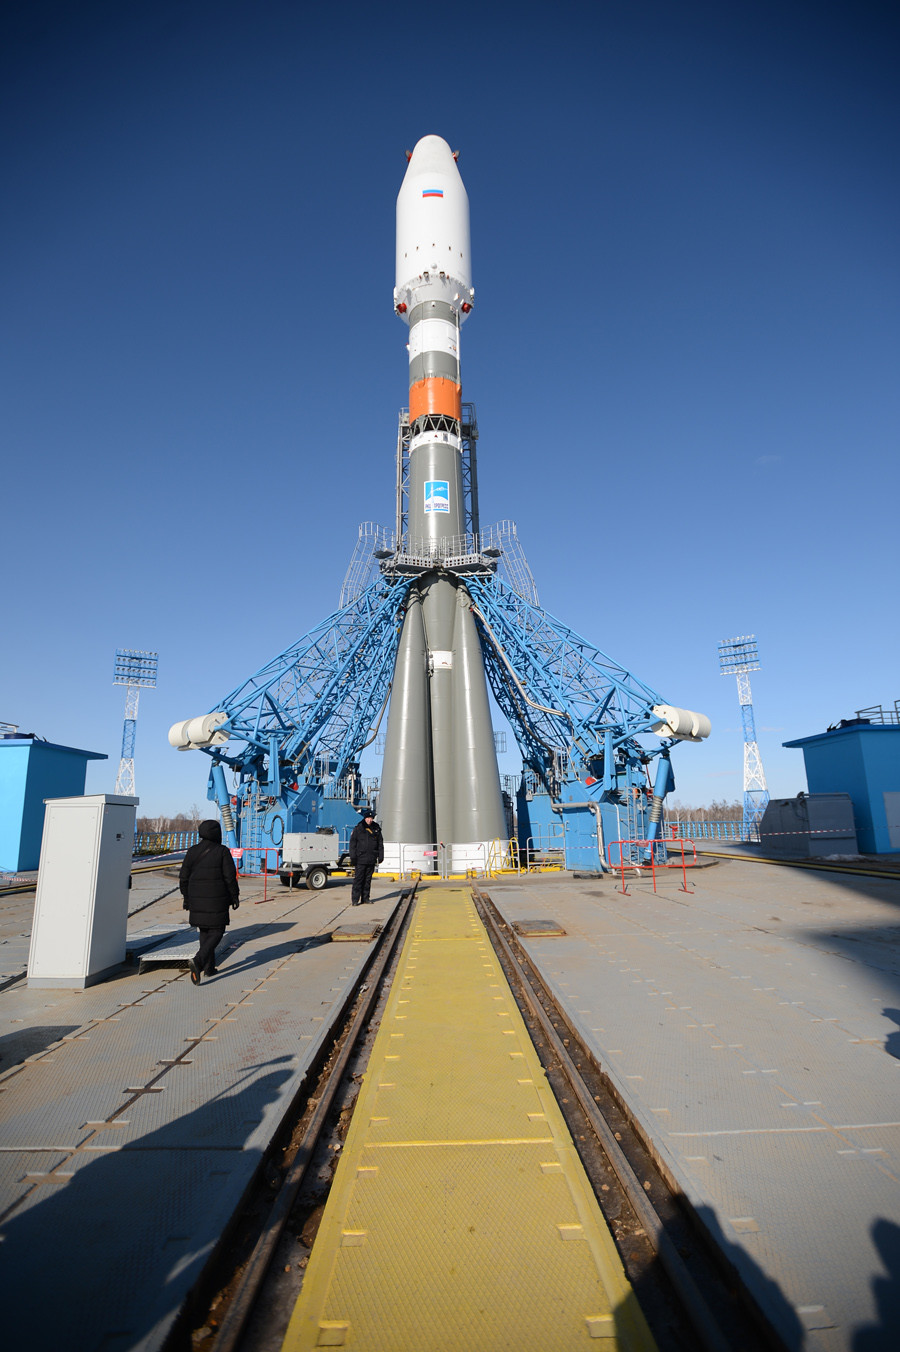 The Soyuz-2.1a carrier rocket of the Progress Rocket Space Center during testing of structural parts and technical check of the installation on the launch pad at the Vostochny Cosmodrome, the Amur region, during an inspection of Russian Deputy Prime Minister Dmitry Rogozin. © Sergey Mamontov